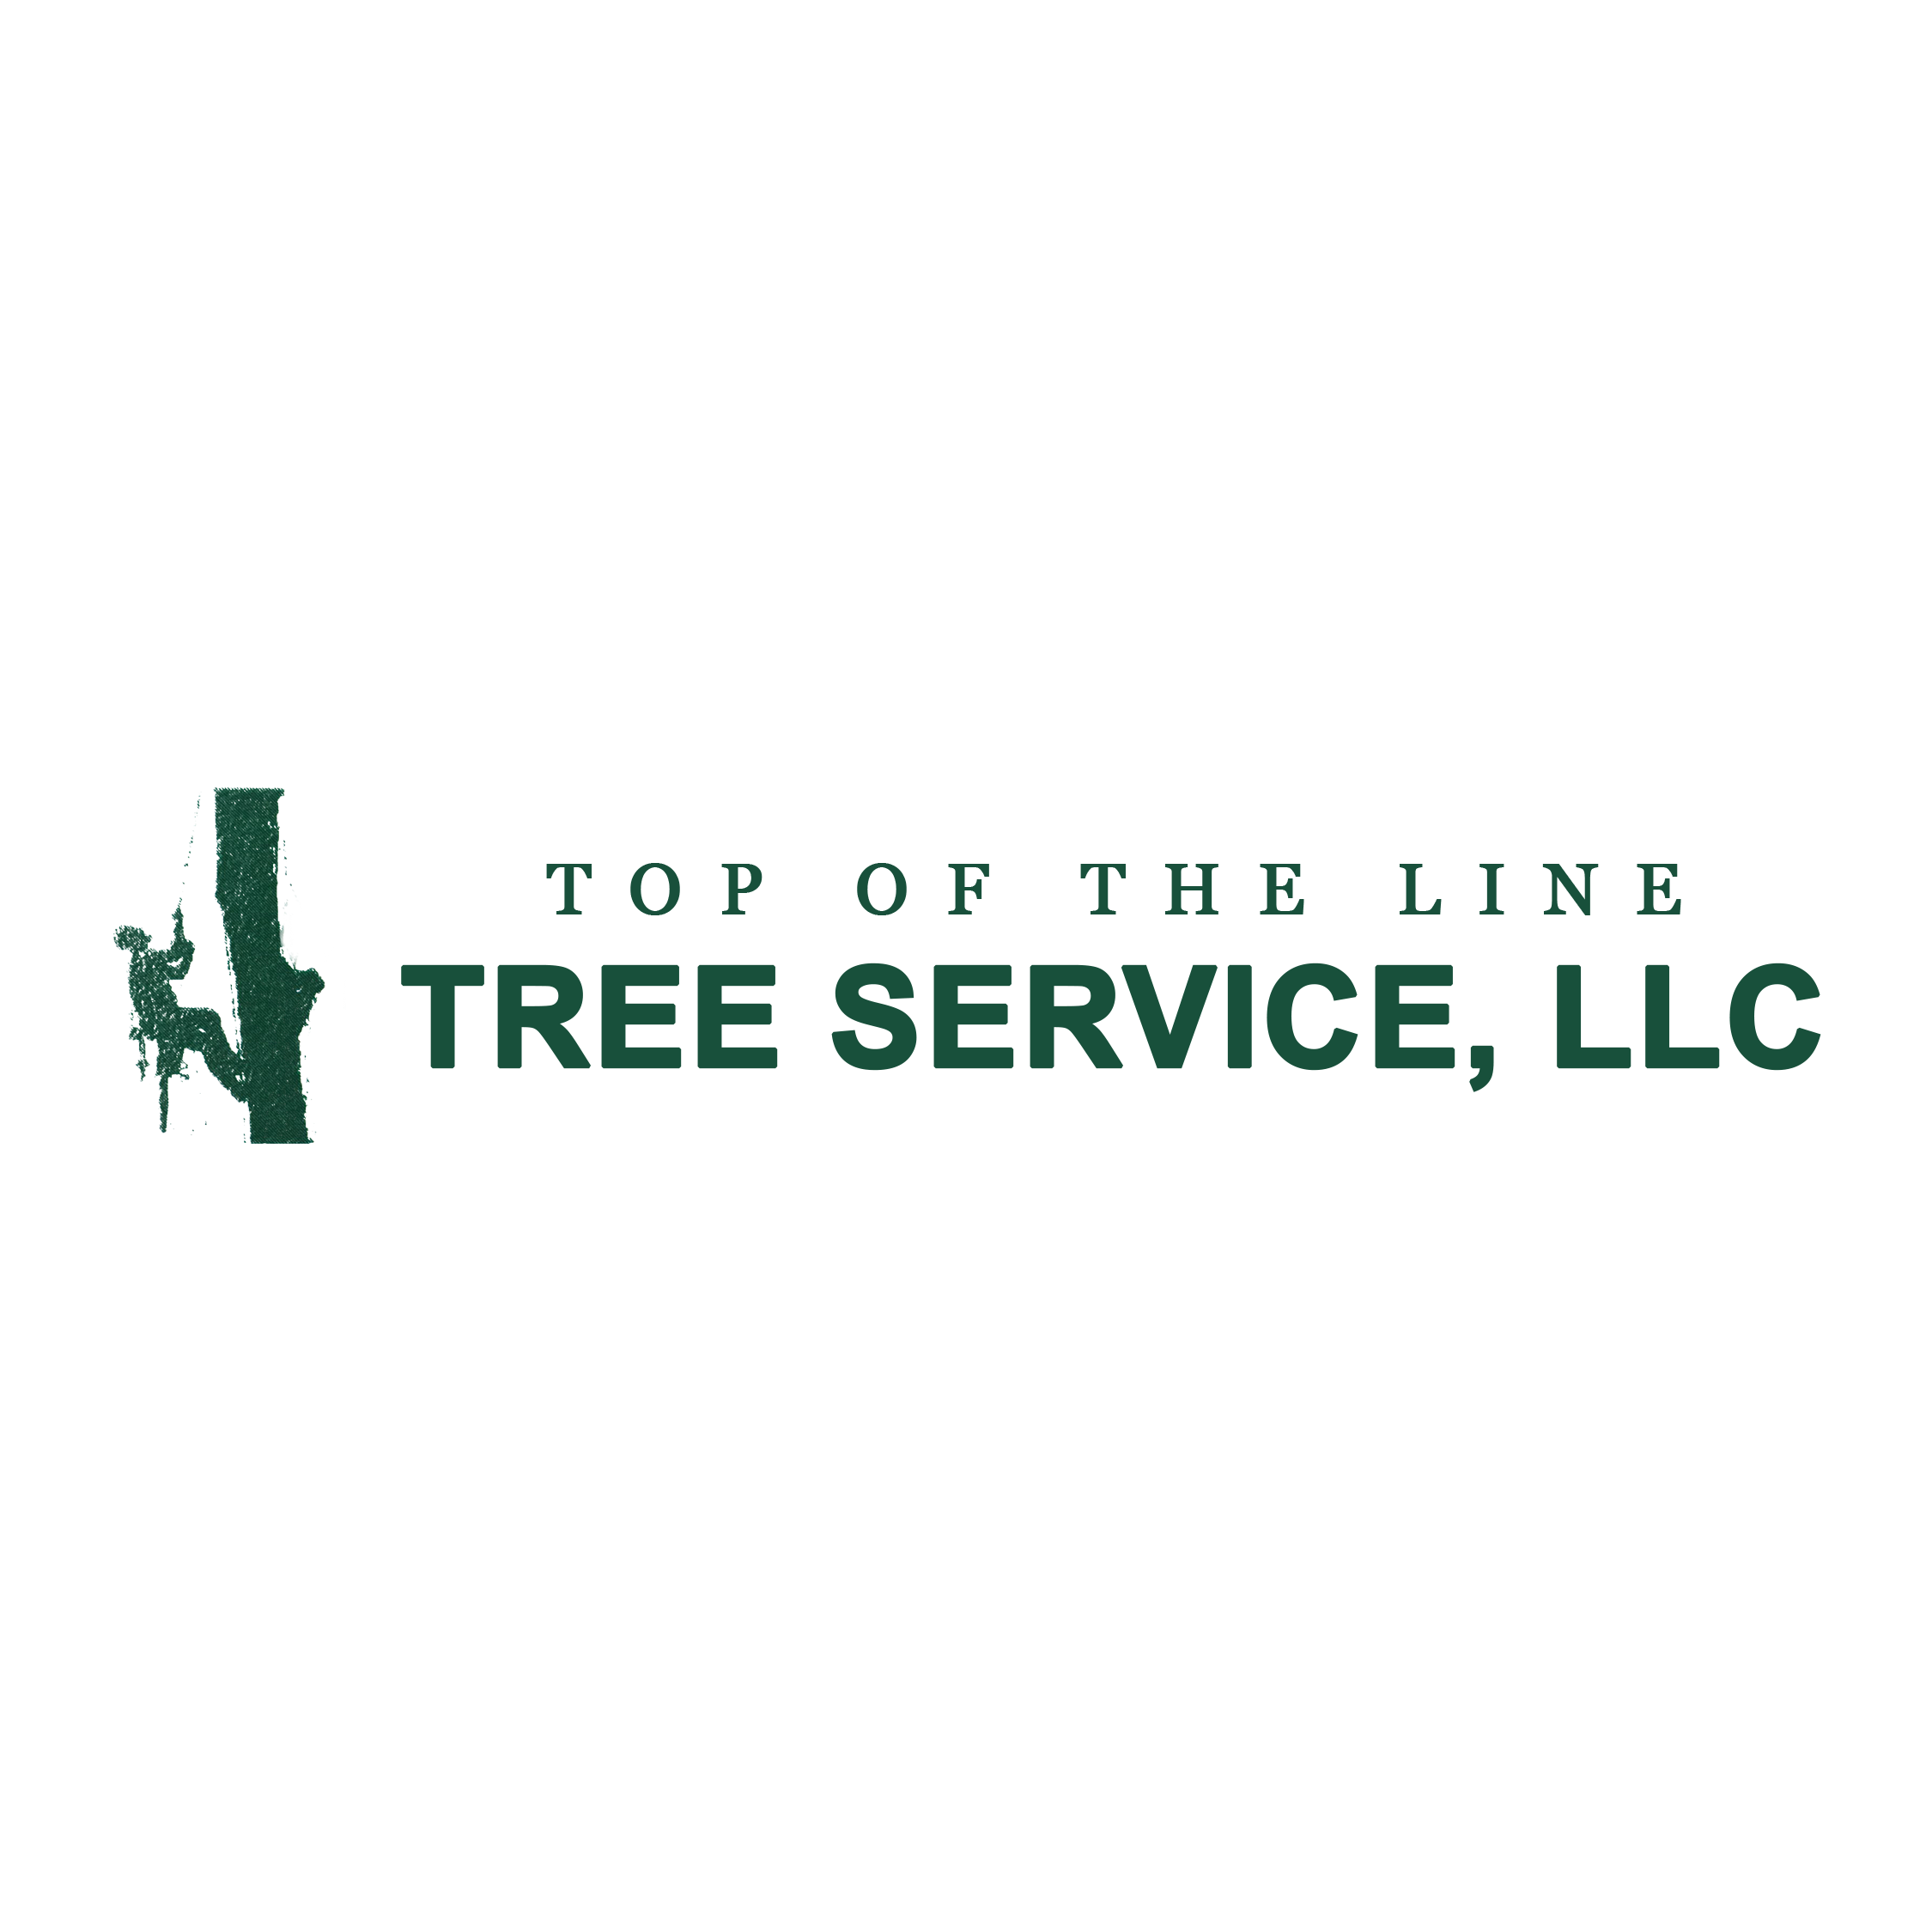 Top of the Line Tree Service, LLC